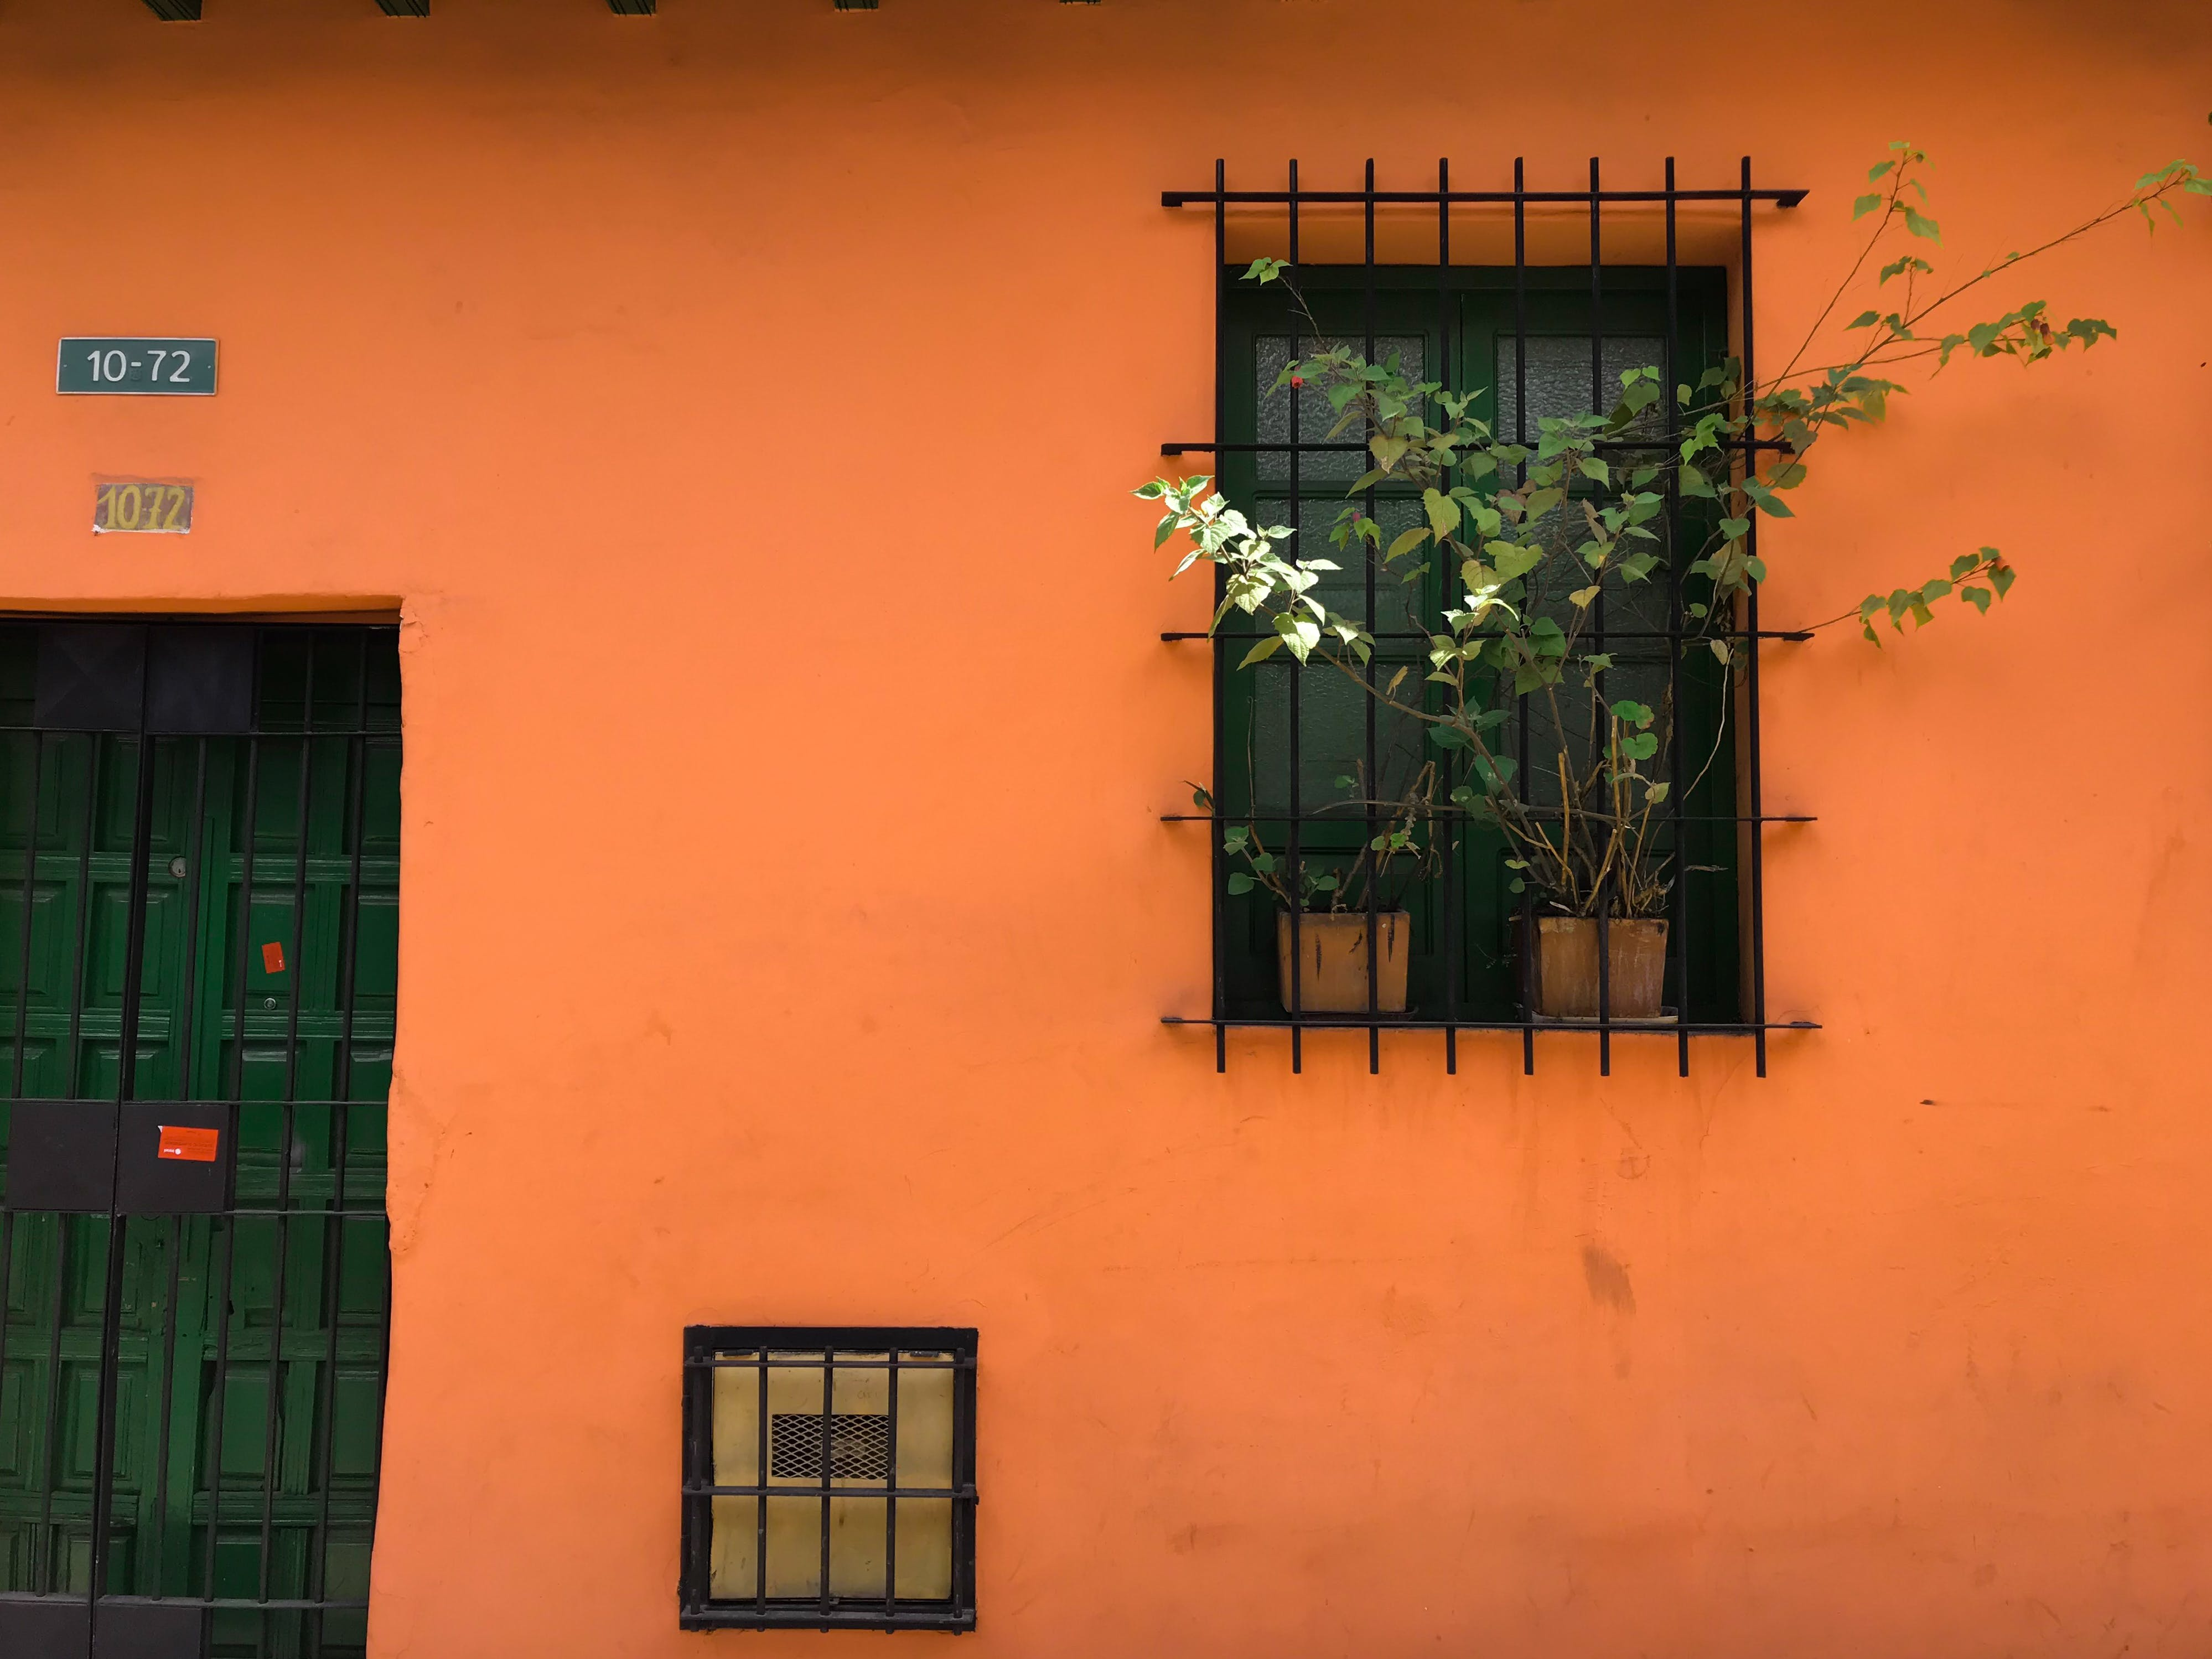 Black Steel Window Bars With Green Plants